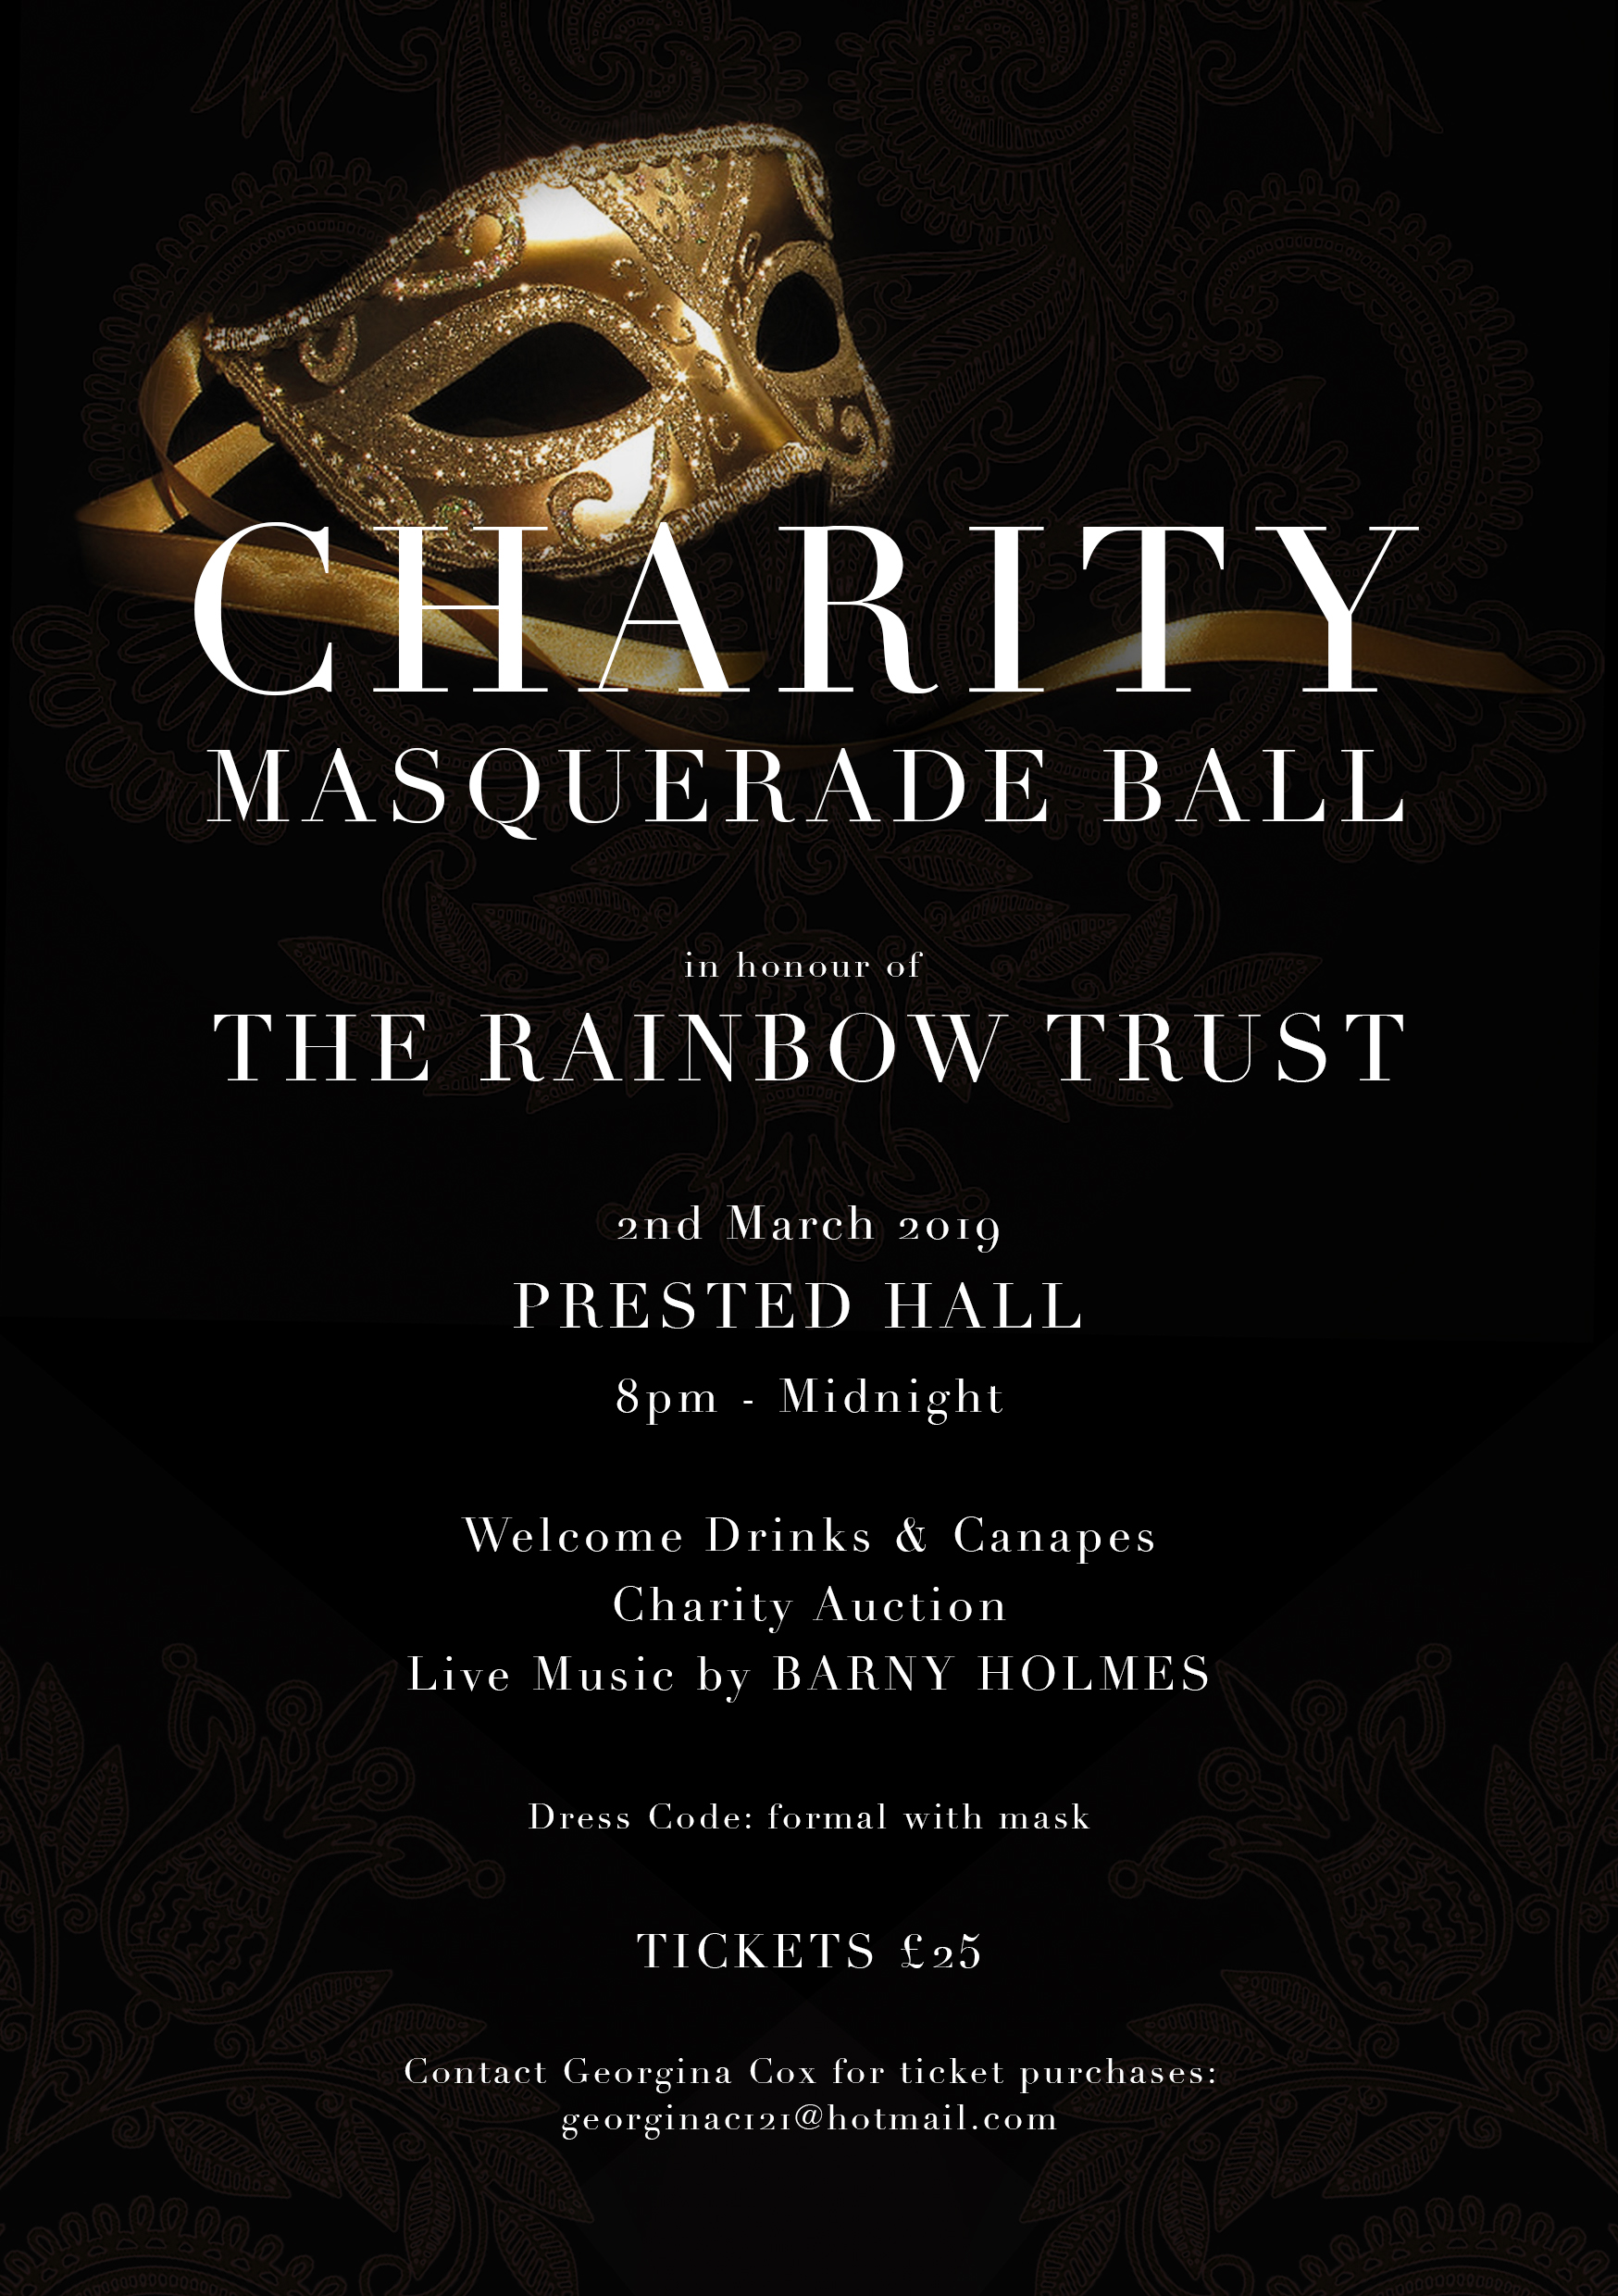 Charity Masquerade Ball for the Rainbow Trust